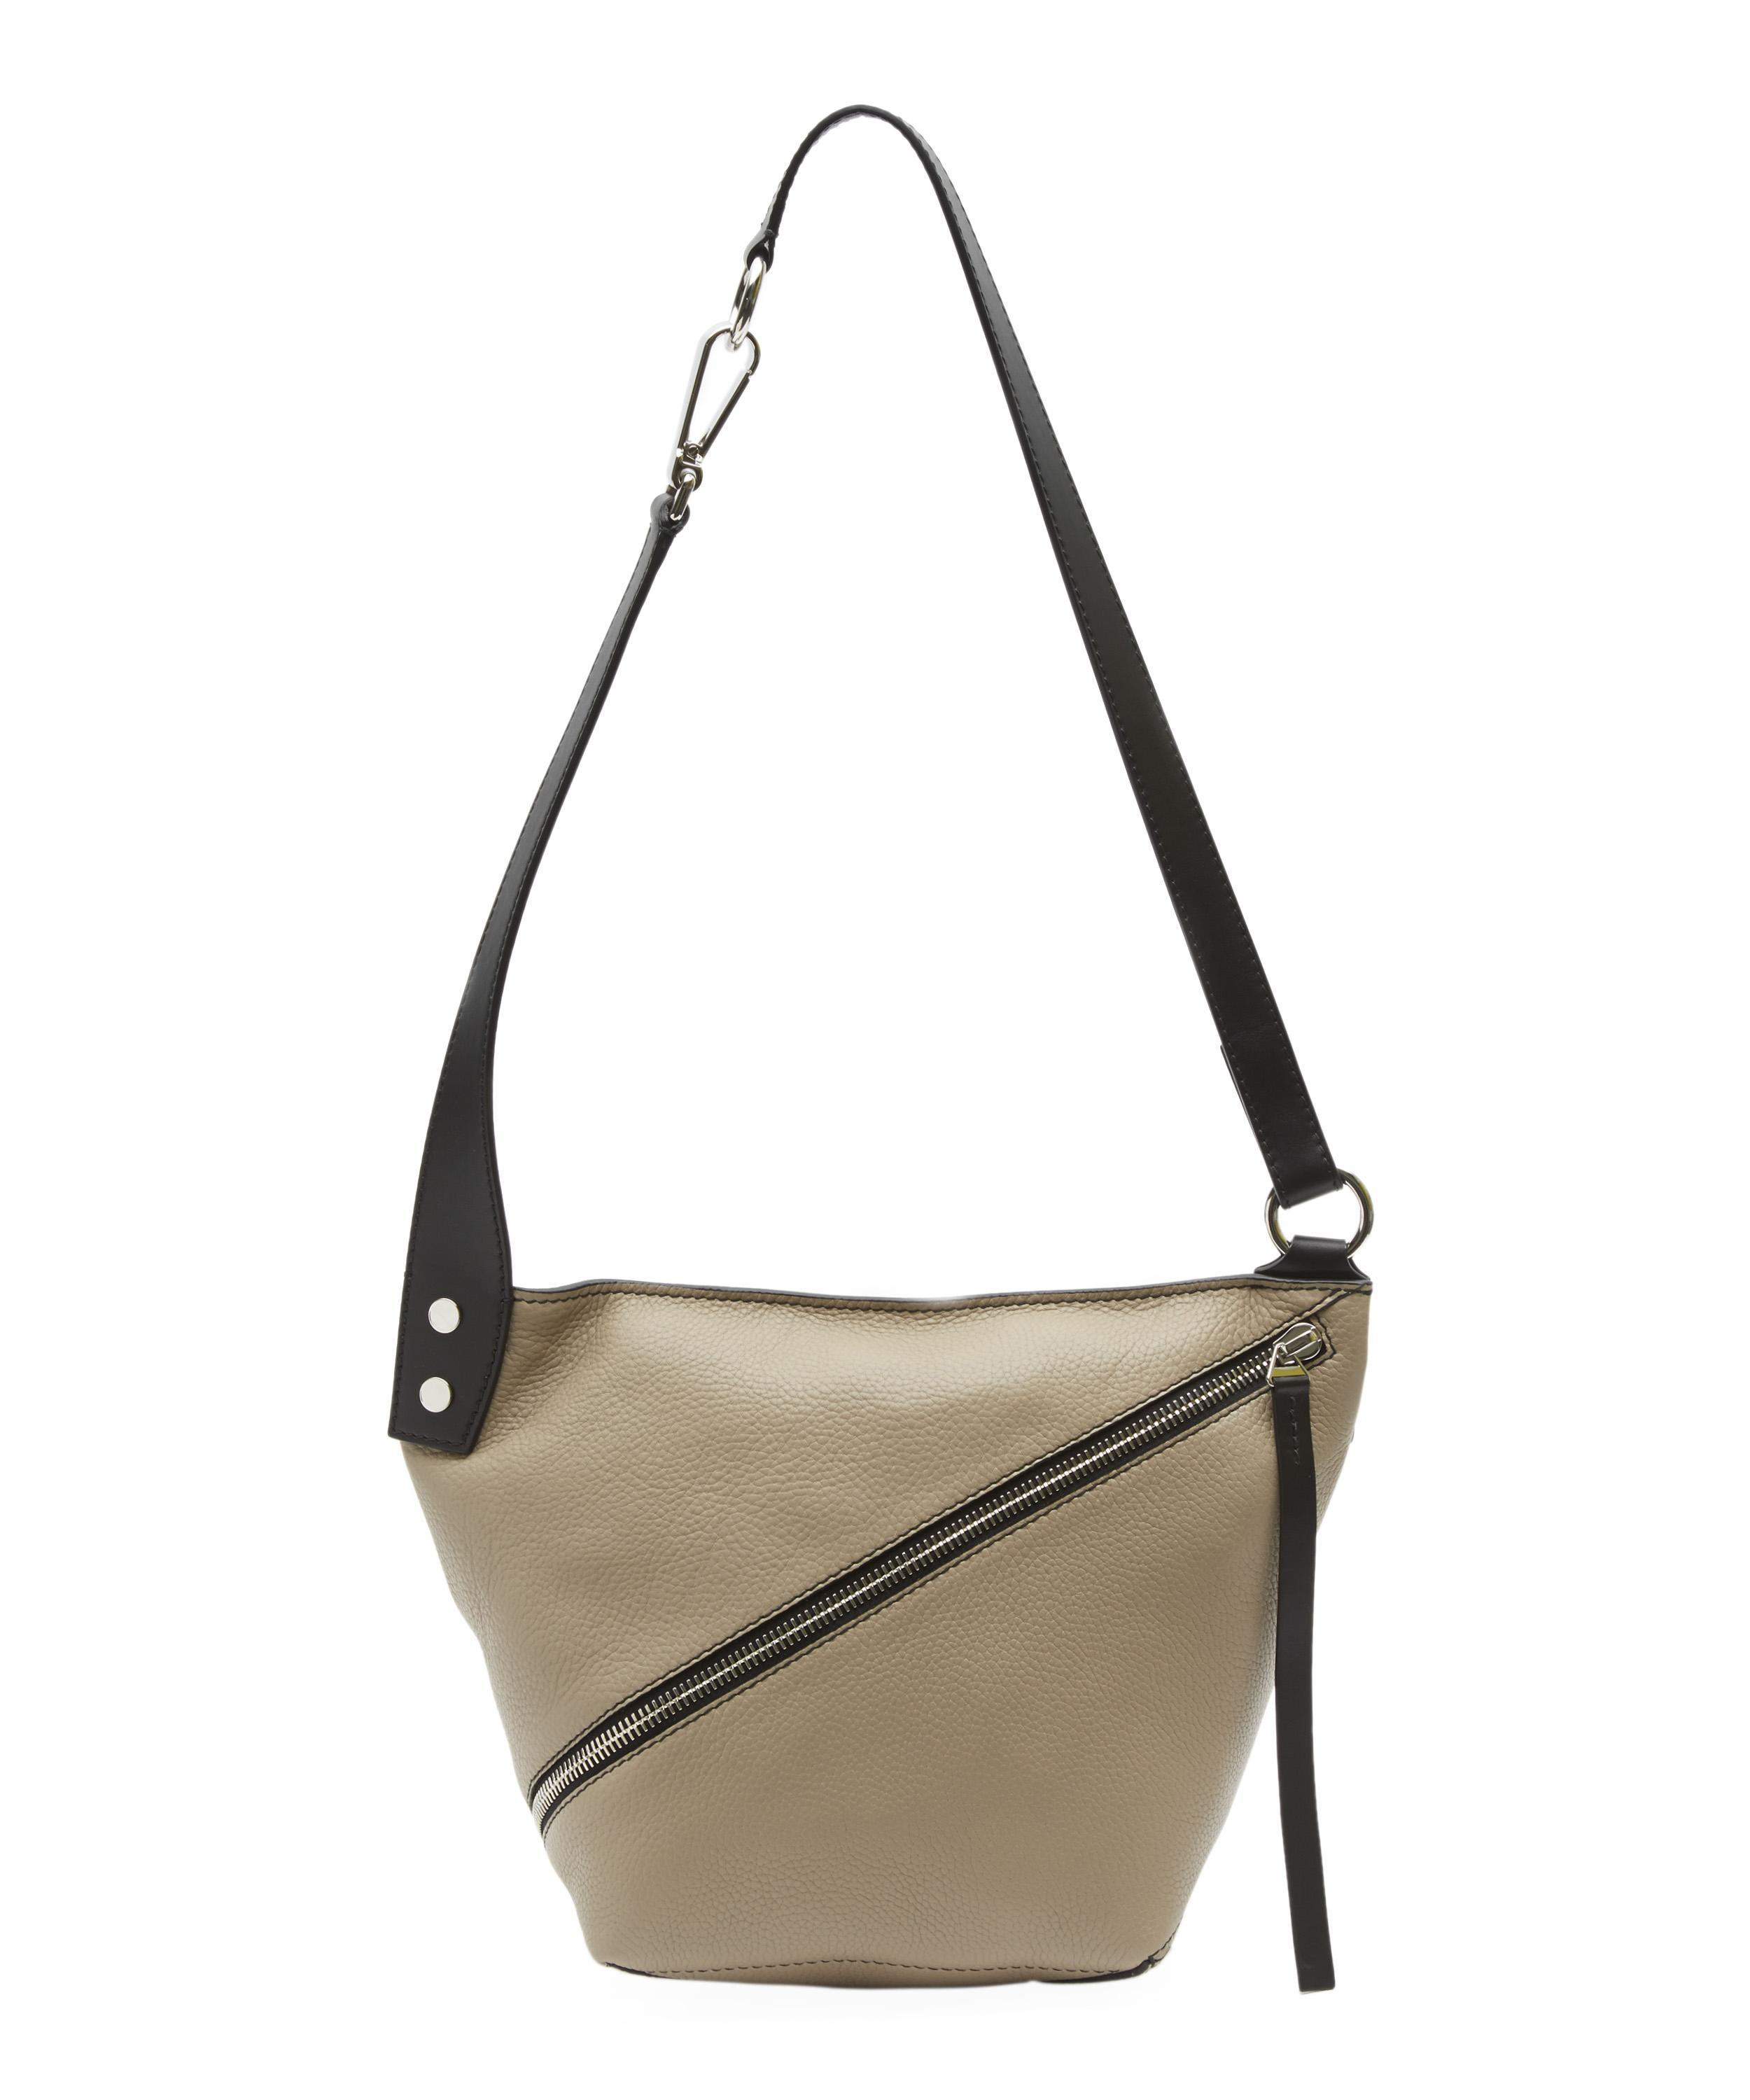 233b71e9abf2 Lyst - Proenza Schouler Grained Leather Diagonal Zip Small Hobo Bag